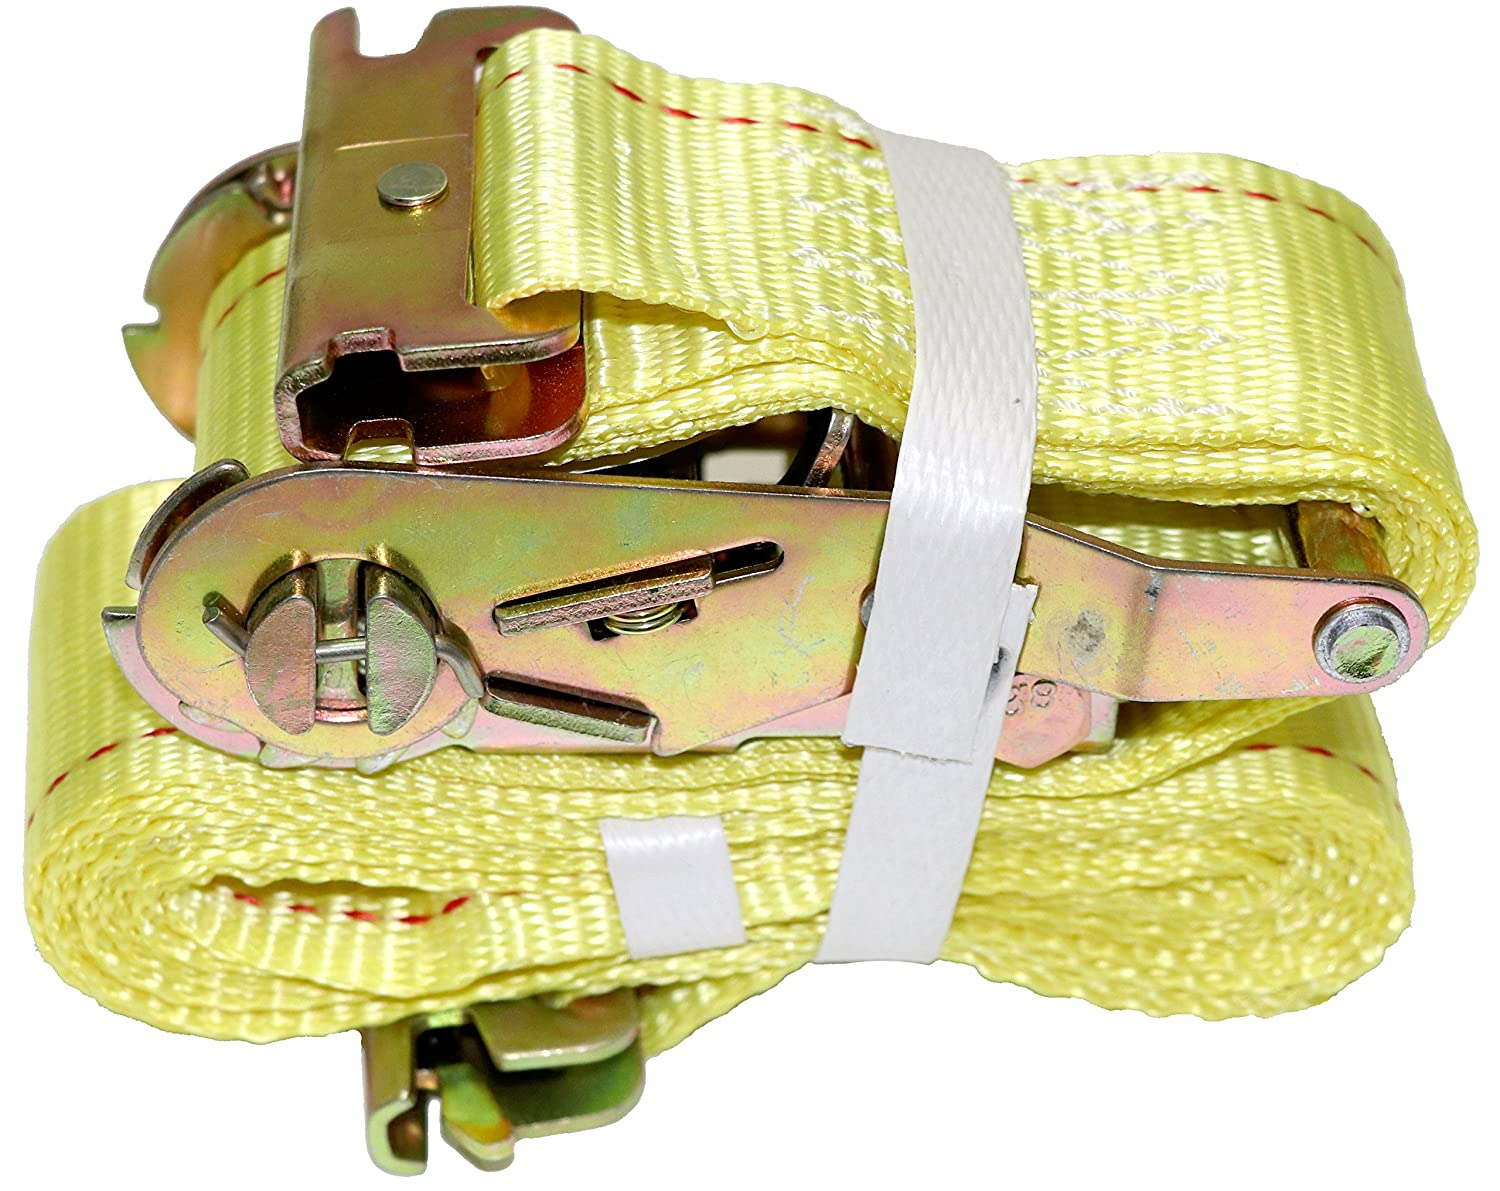 E track ratchet straps home depot outdoor glue for wood